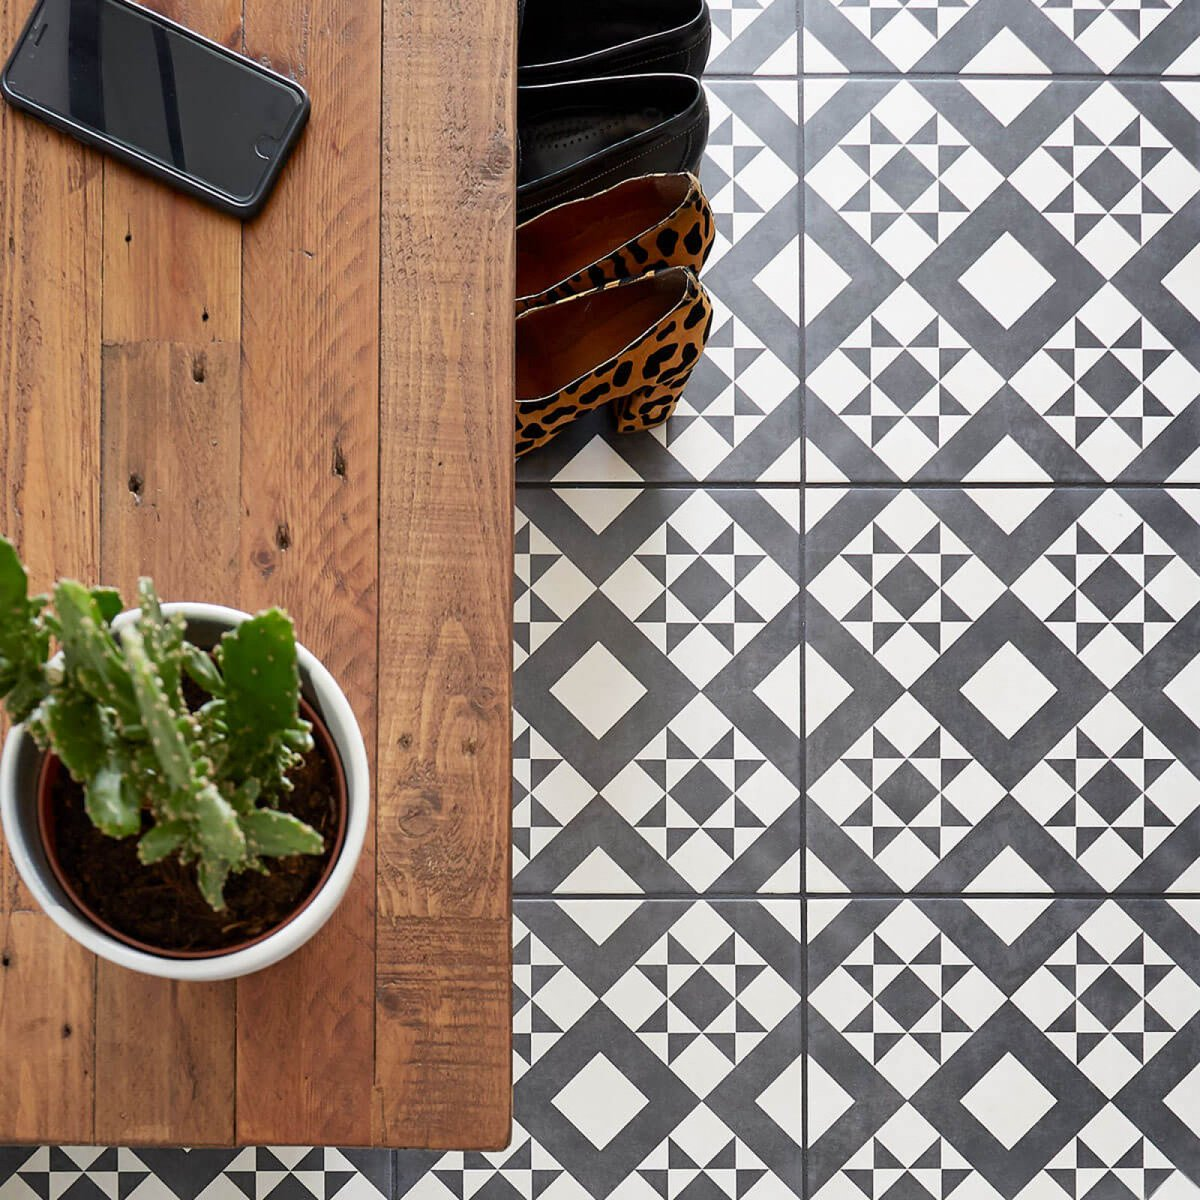 British ceramic tile bctspec twitter check out our award winning feature floor tile retro contact us for a sample or further info interiors housebuild tiles featurefloors dailygadgetfo Images